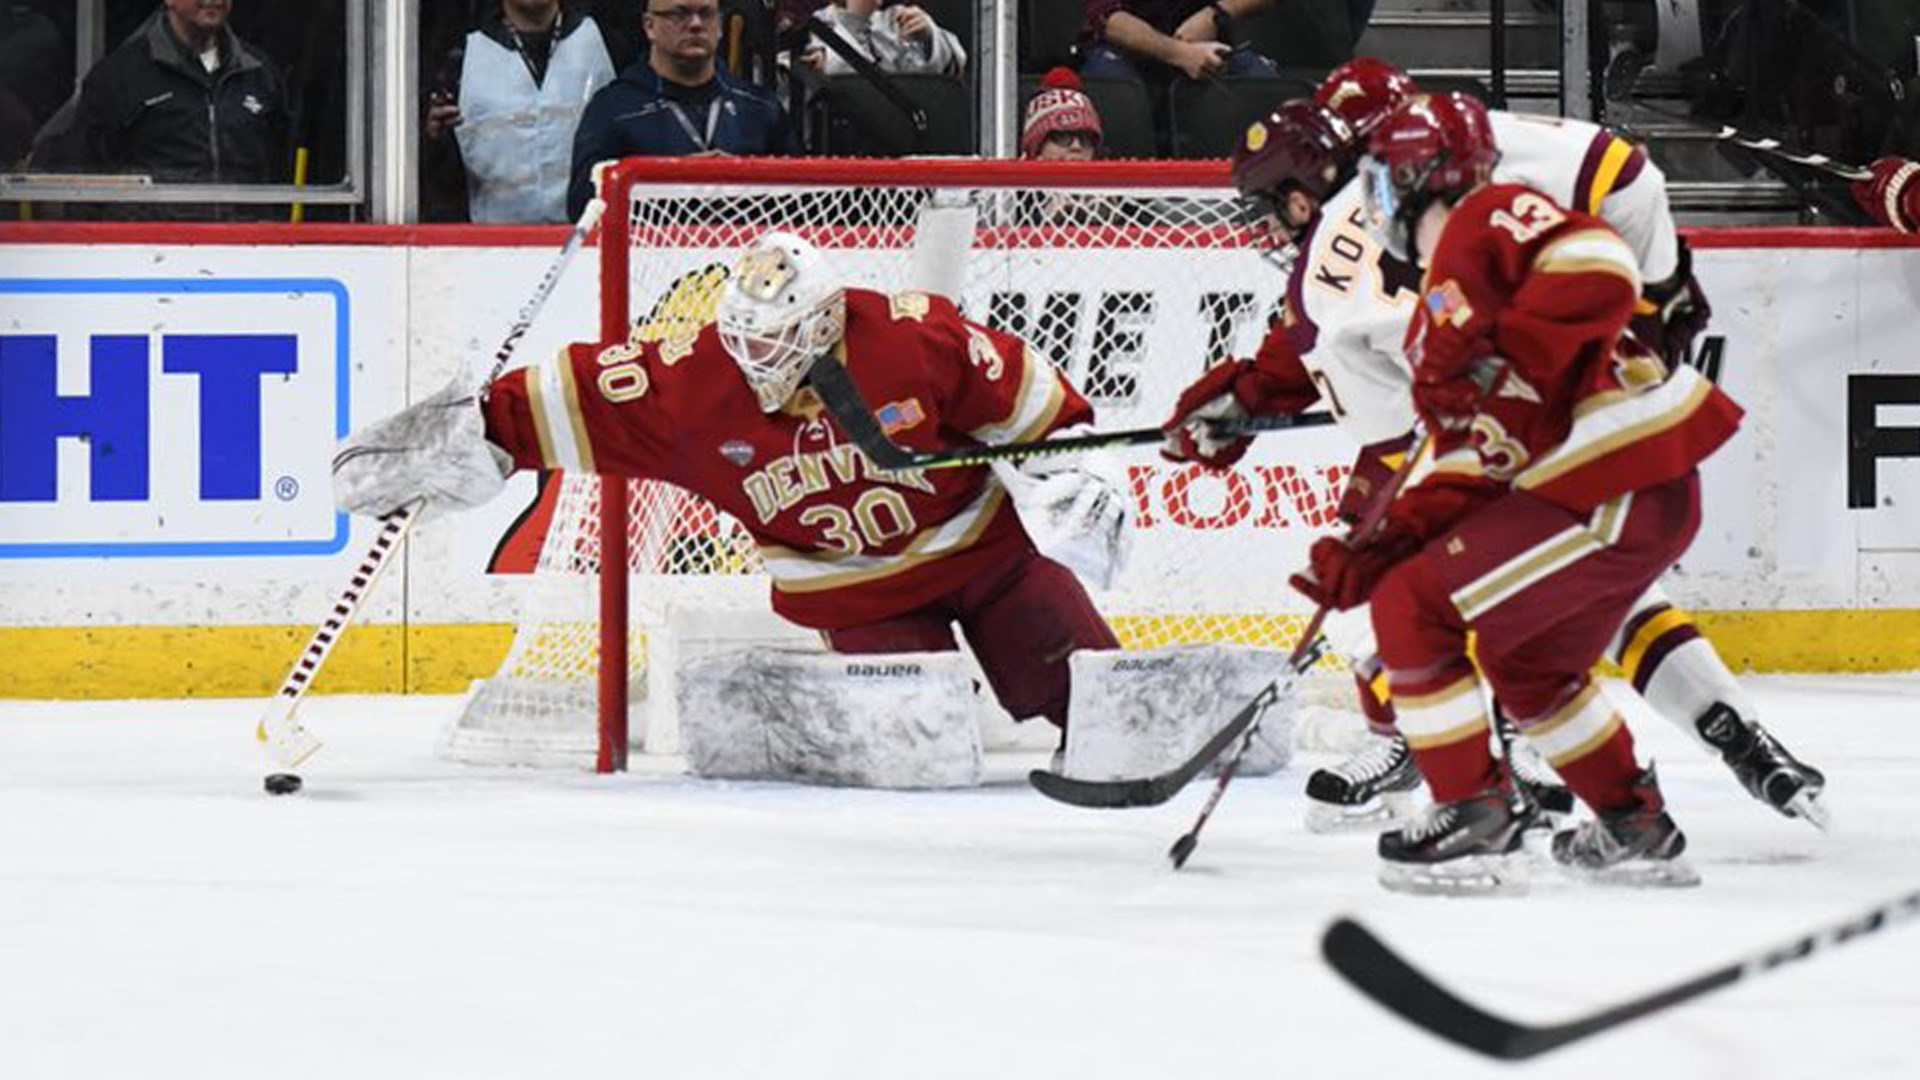 Denver Falls to Minnesota Duluth in Frozen Faceoff Semifinal